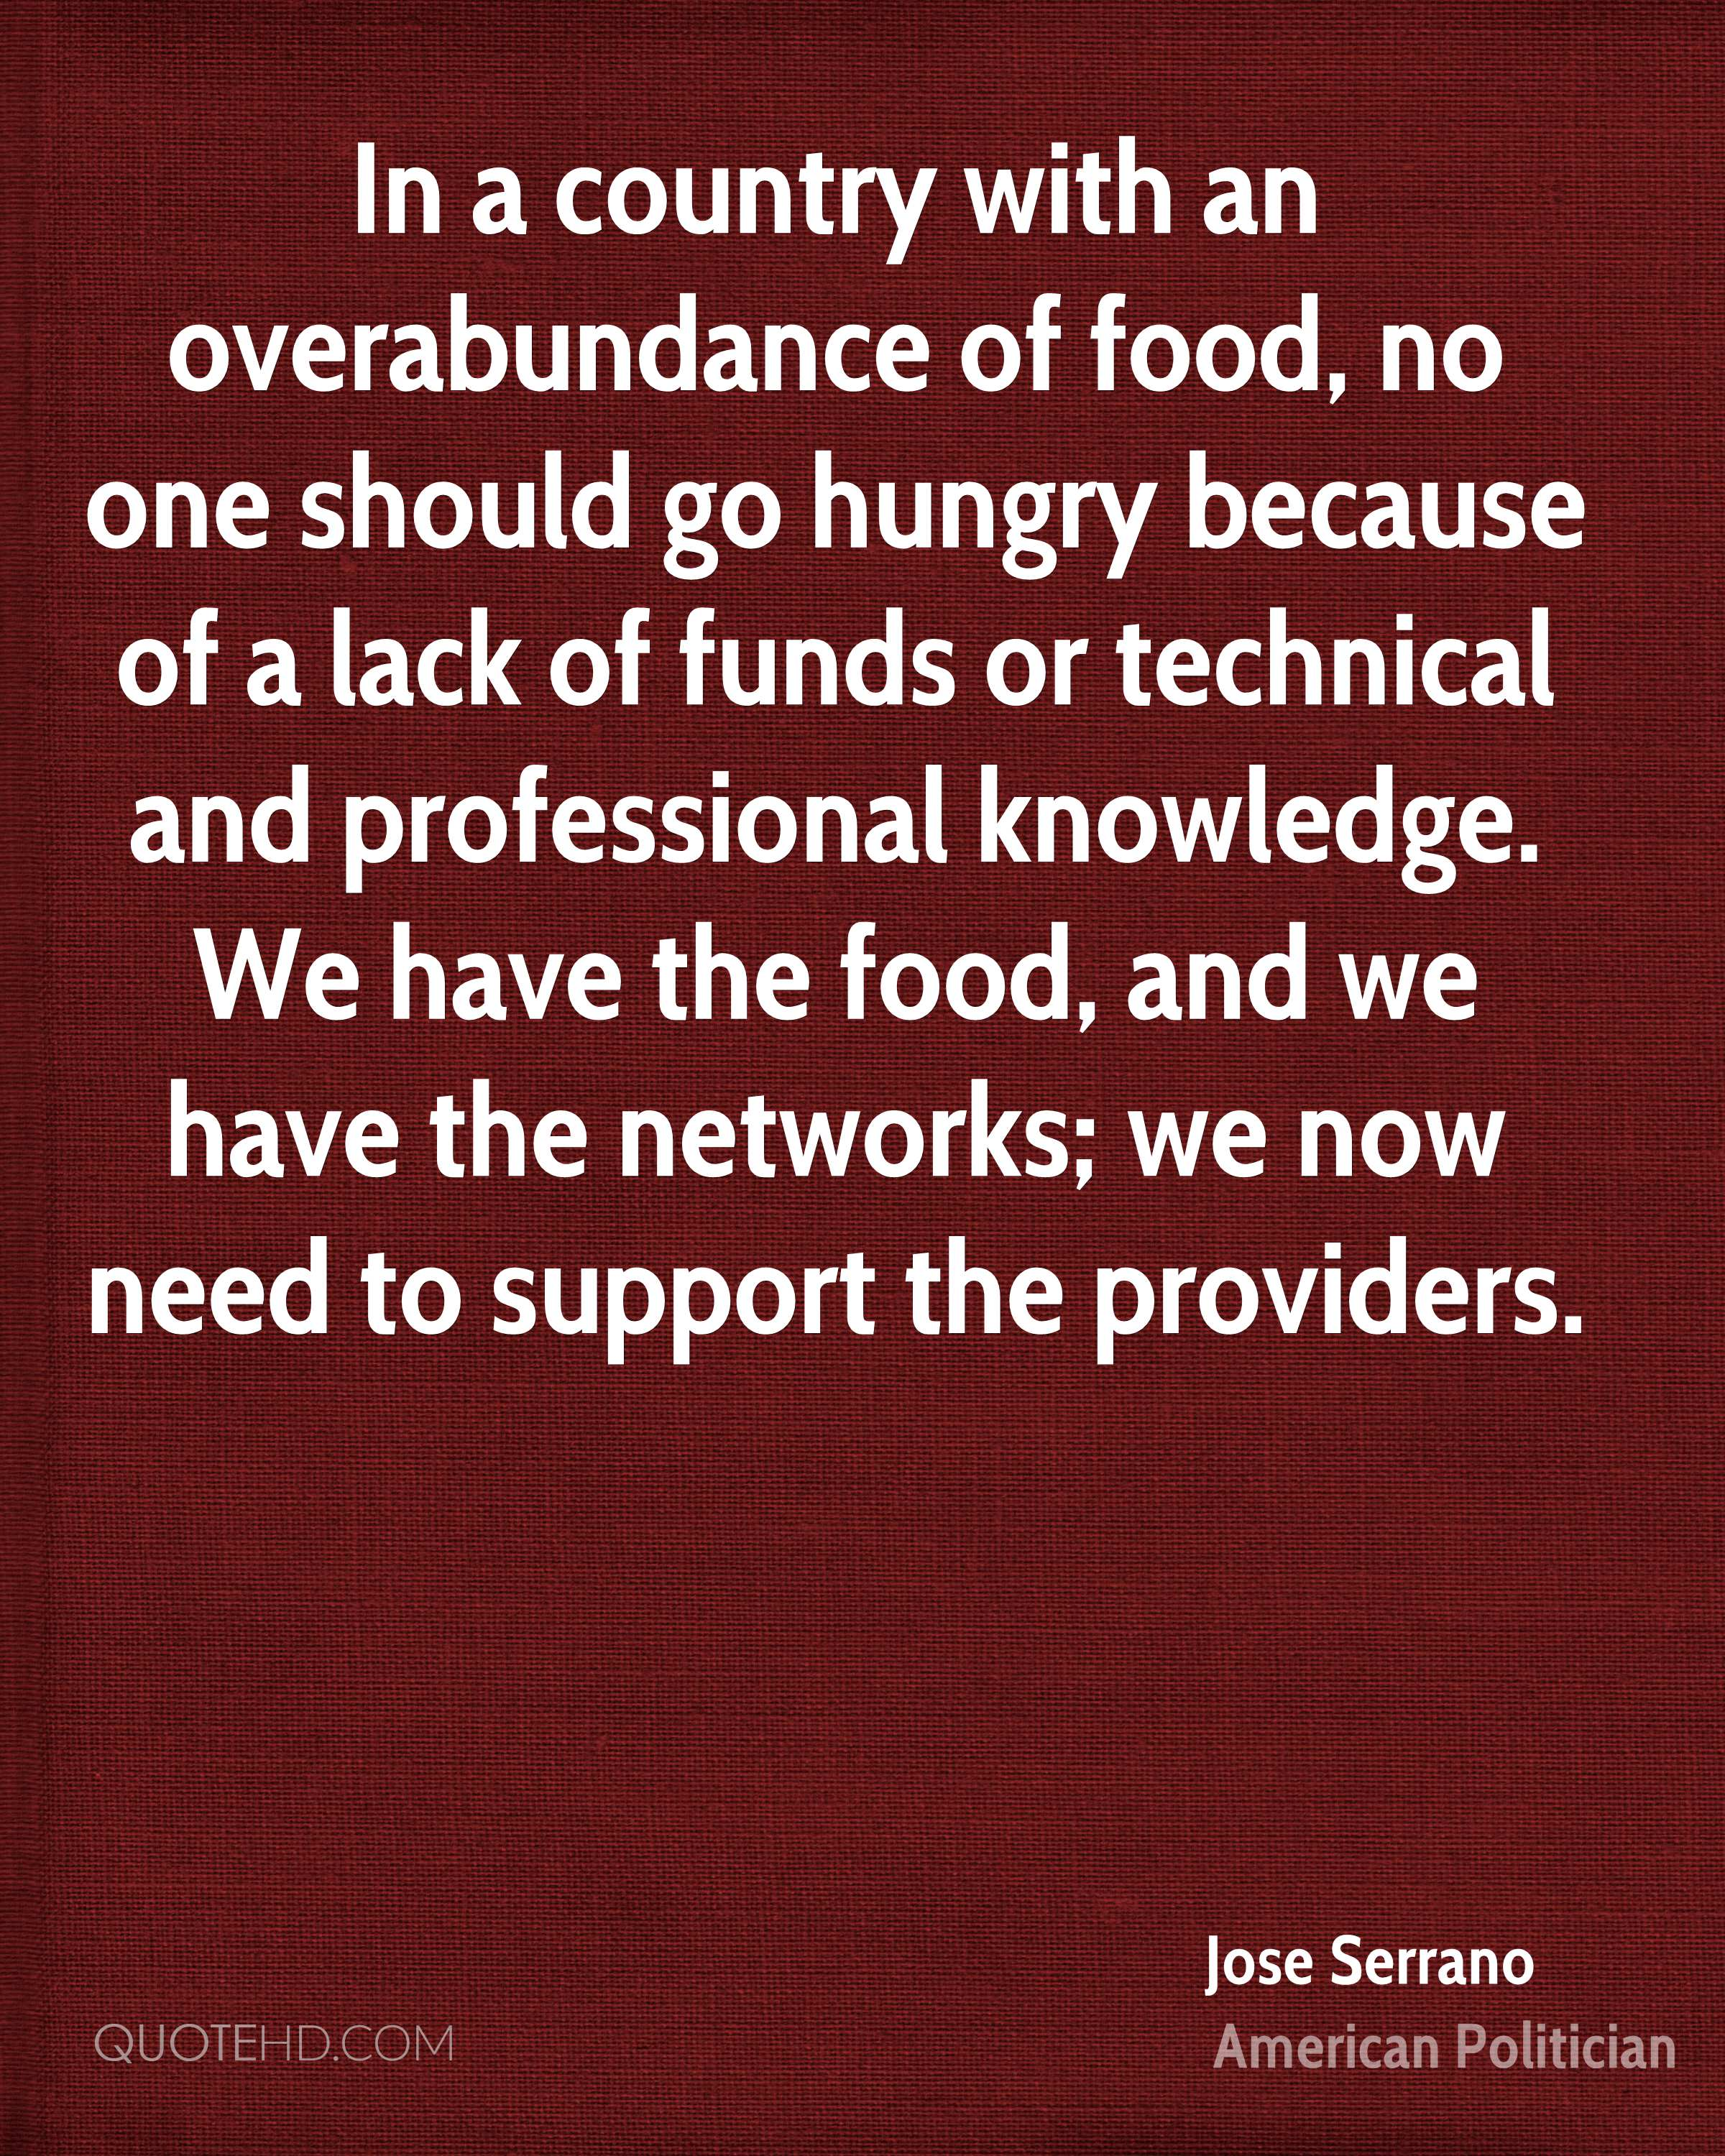 In a country with an overabundance of food, no one should go hungry because of a lack of funds or technical and professional knowledge. We have the food, and we have the networks; we now need to support the providers.